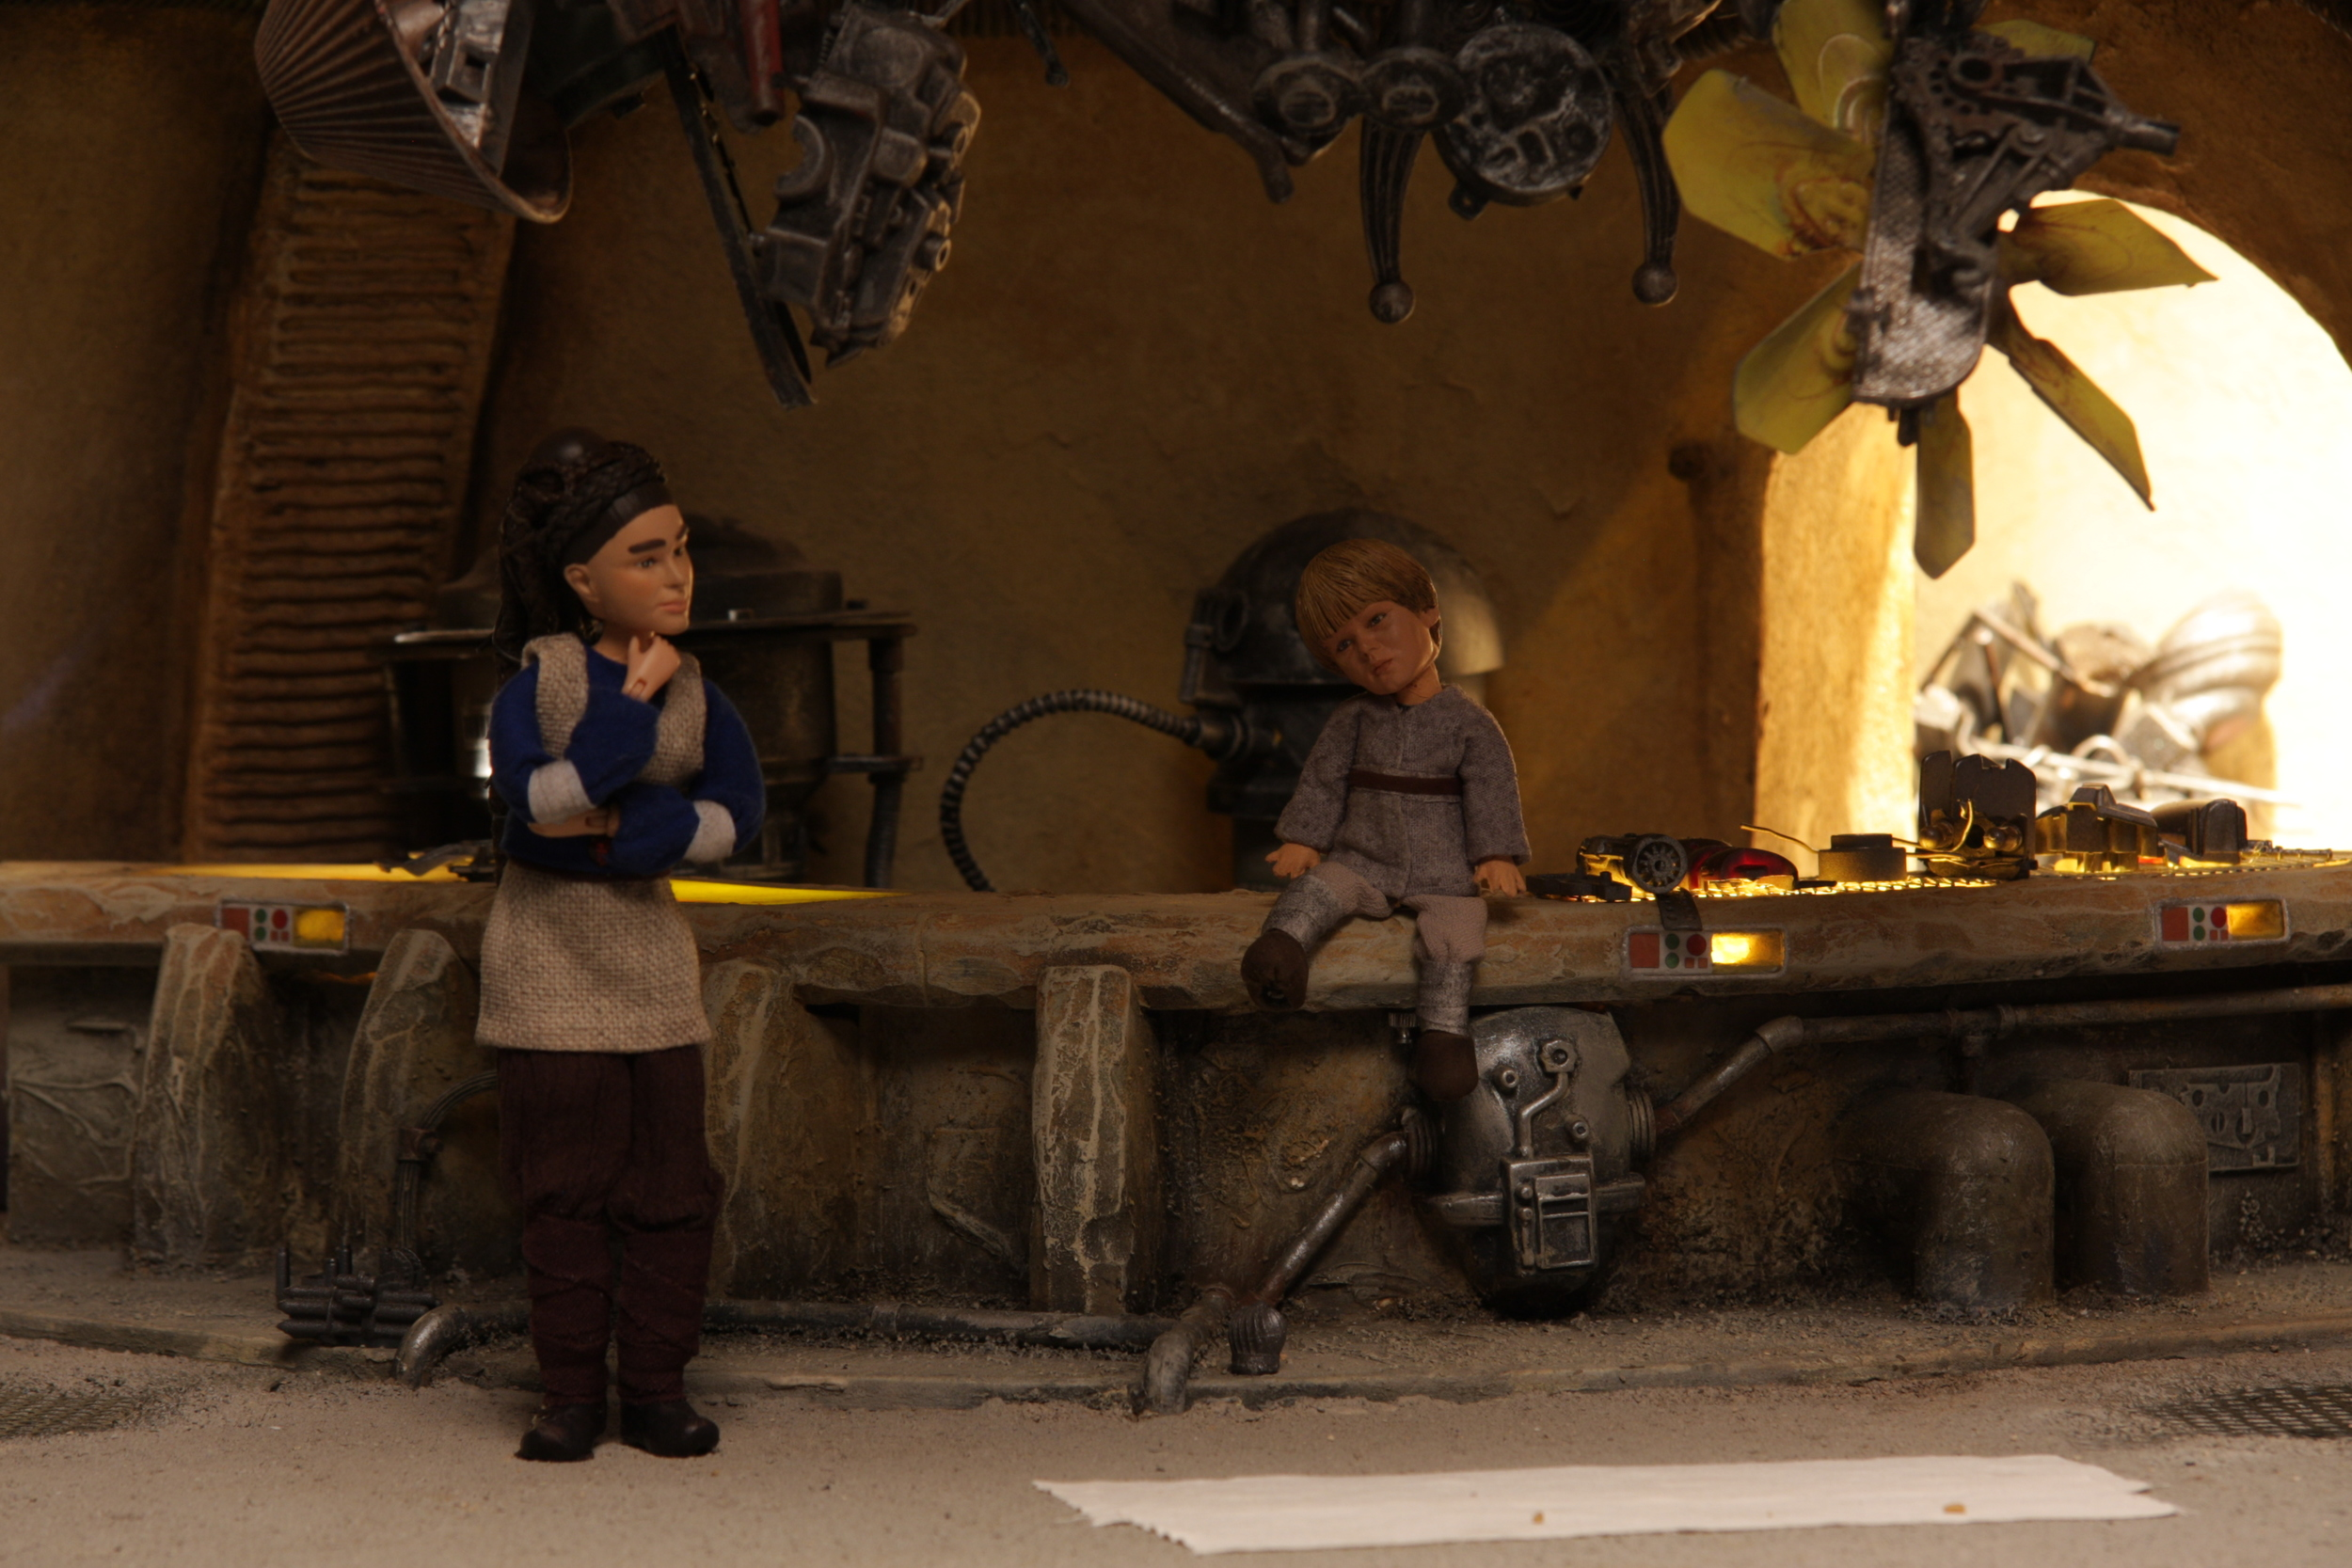 Robot Chicken Star Wars 2 Image 07.jpg